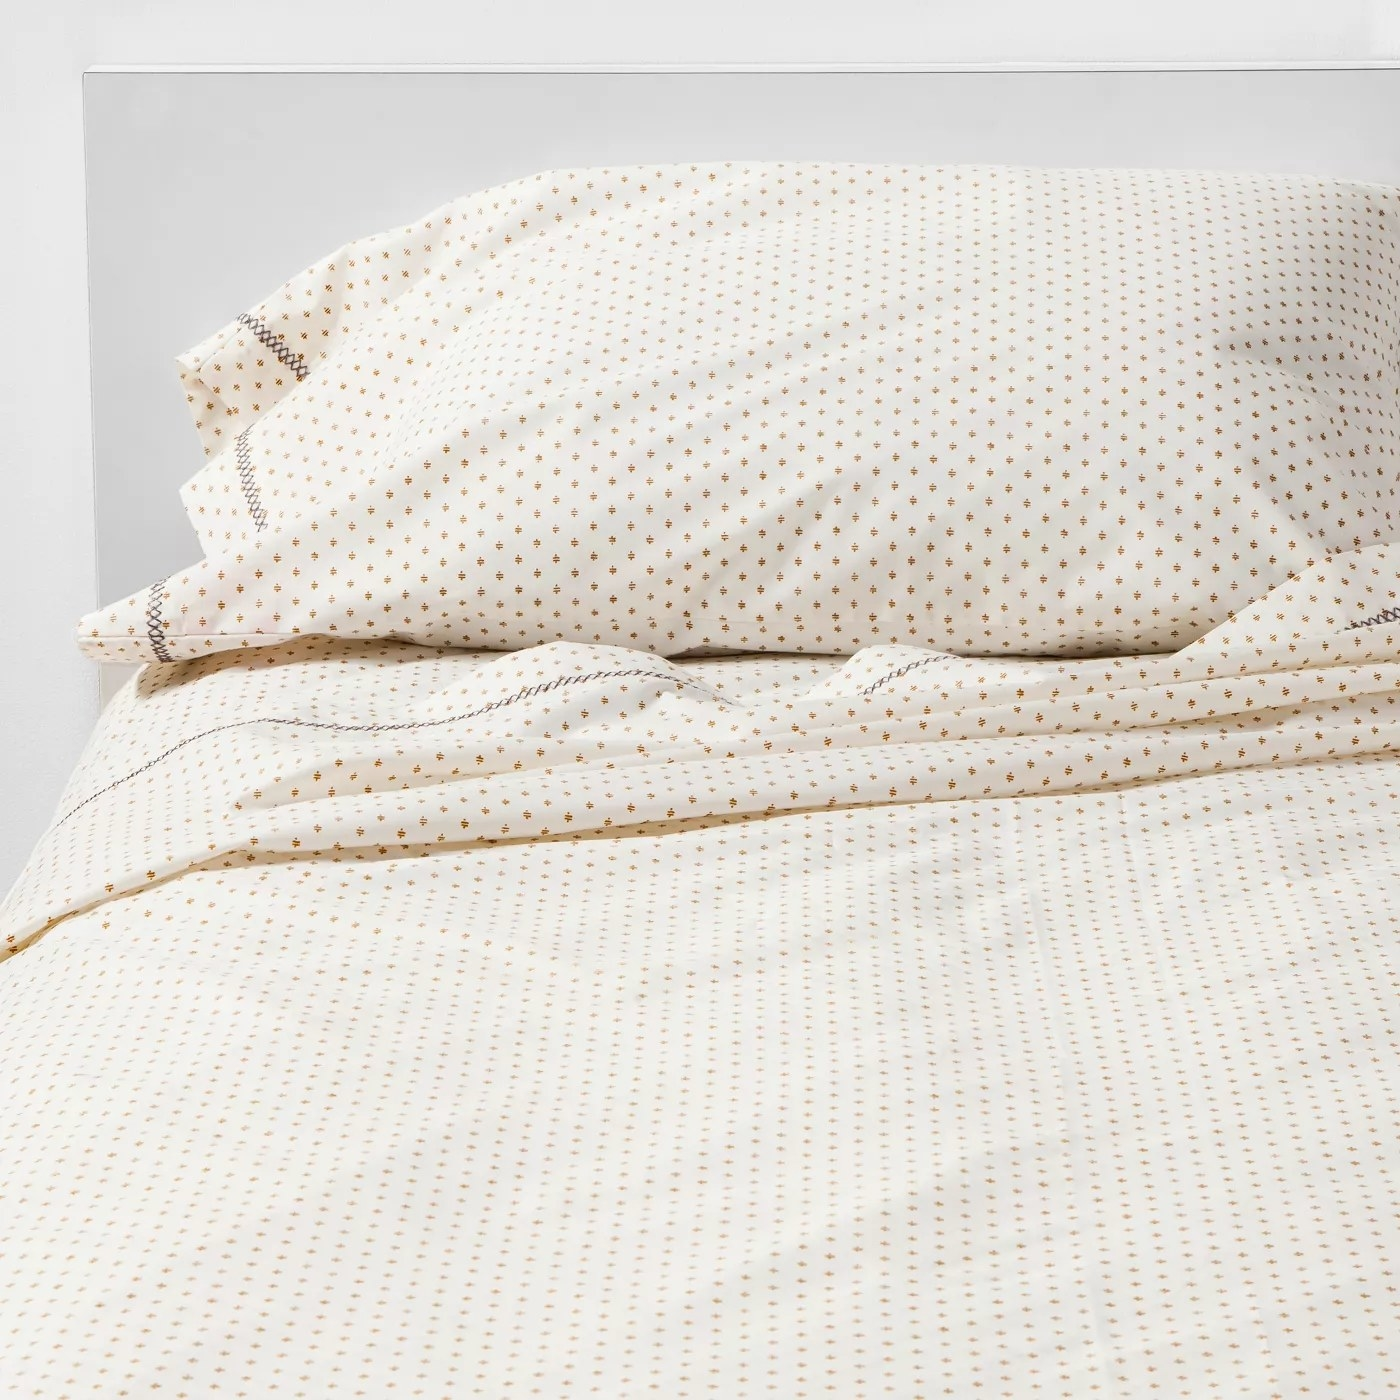 The yellow and white cotton sheets on a bed